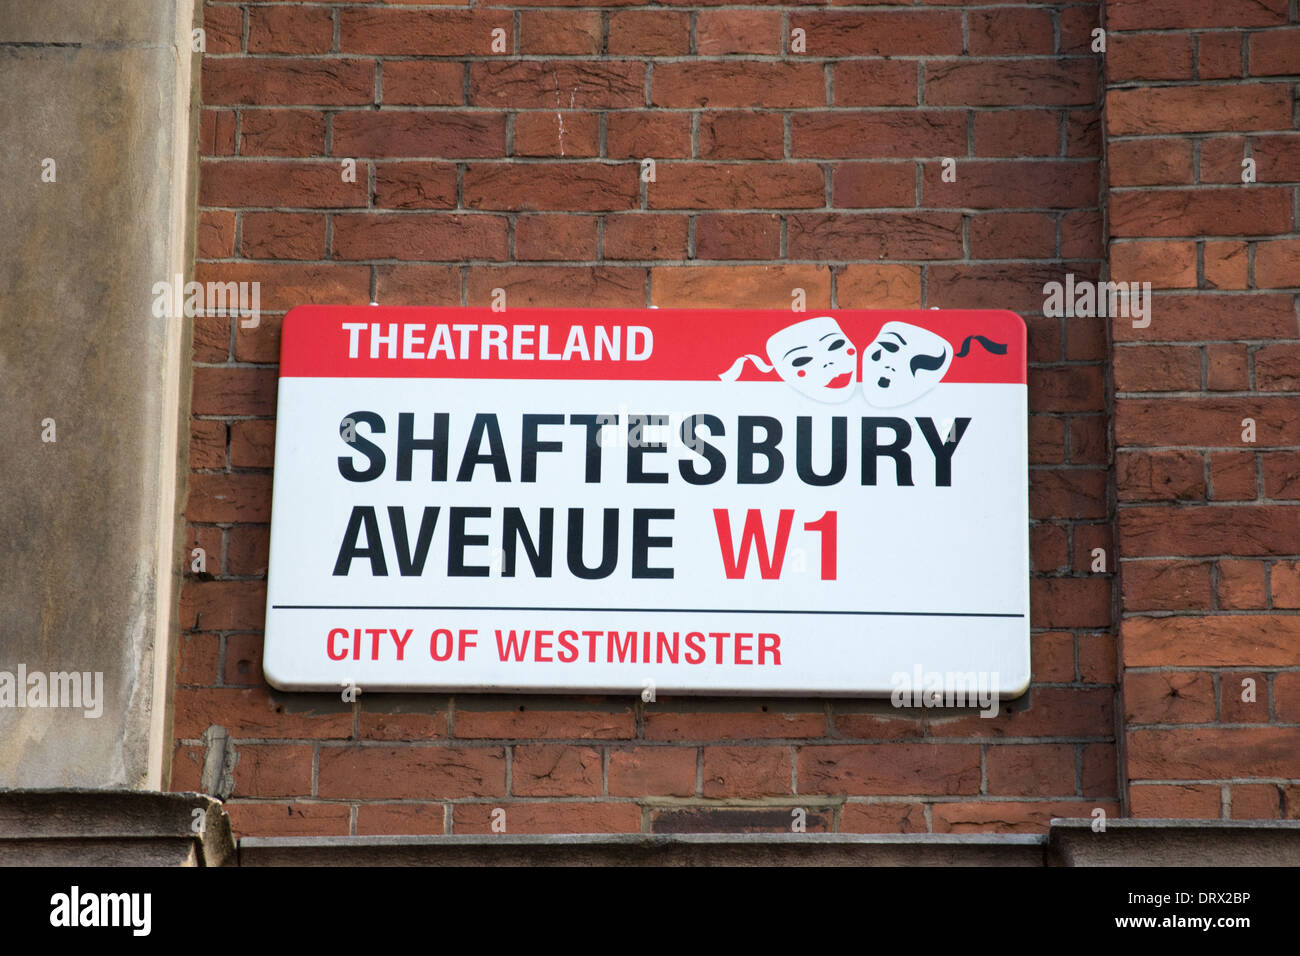 Shaftesbury Avenue street sign in London's West End - Stock Image